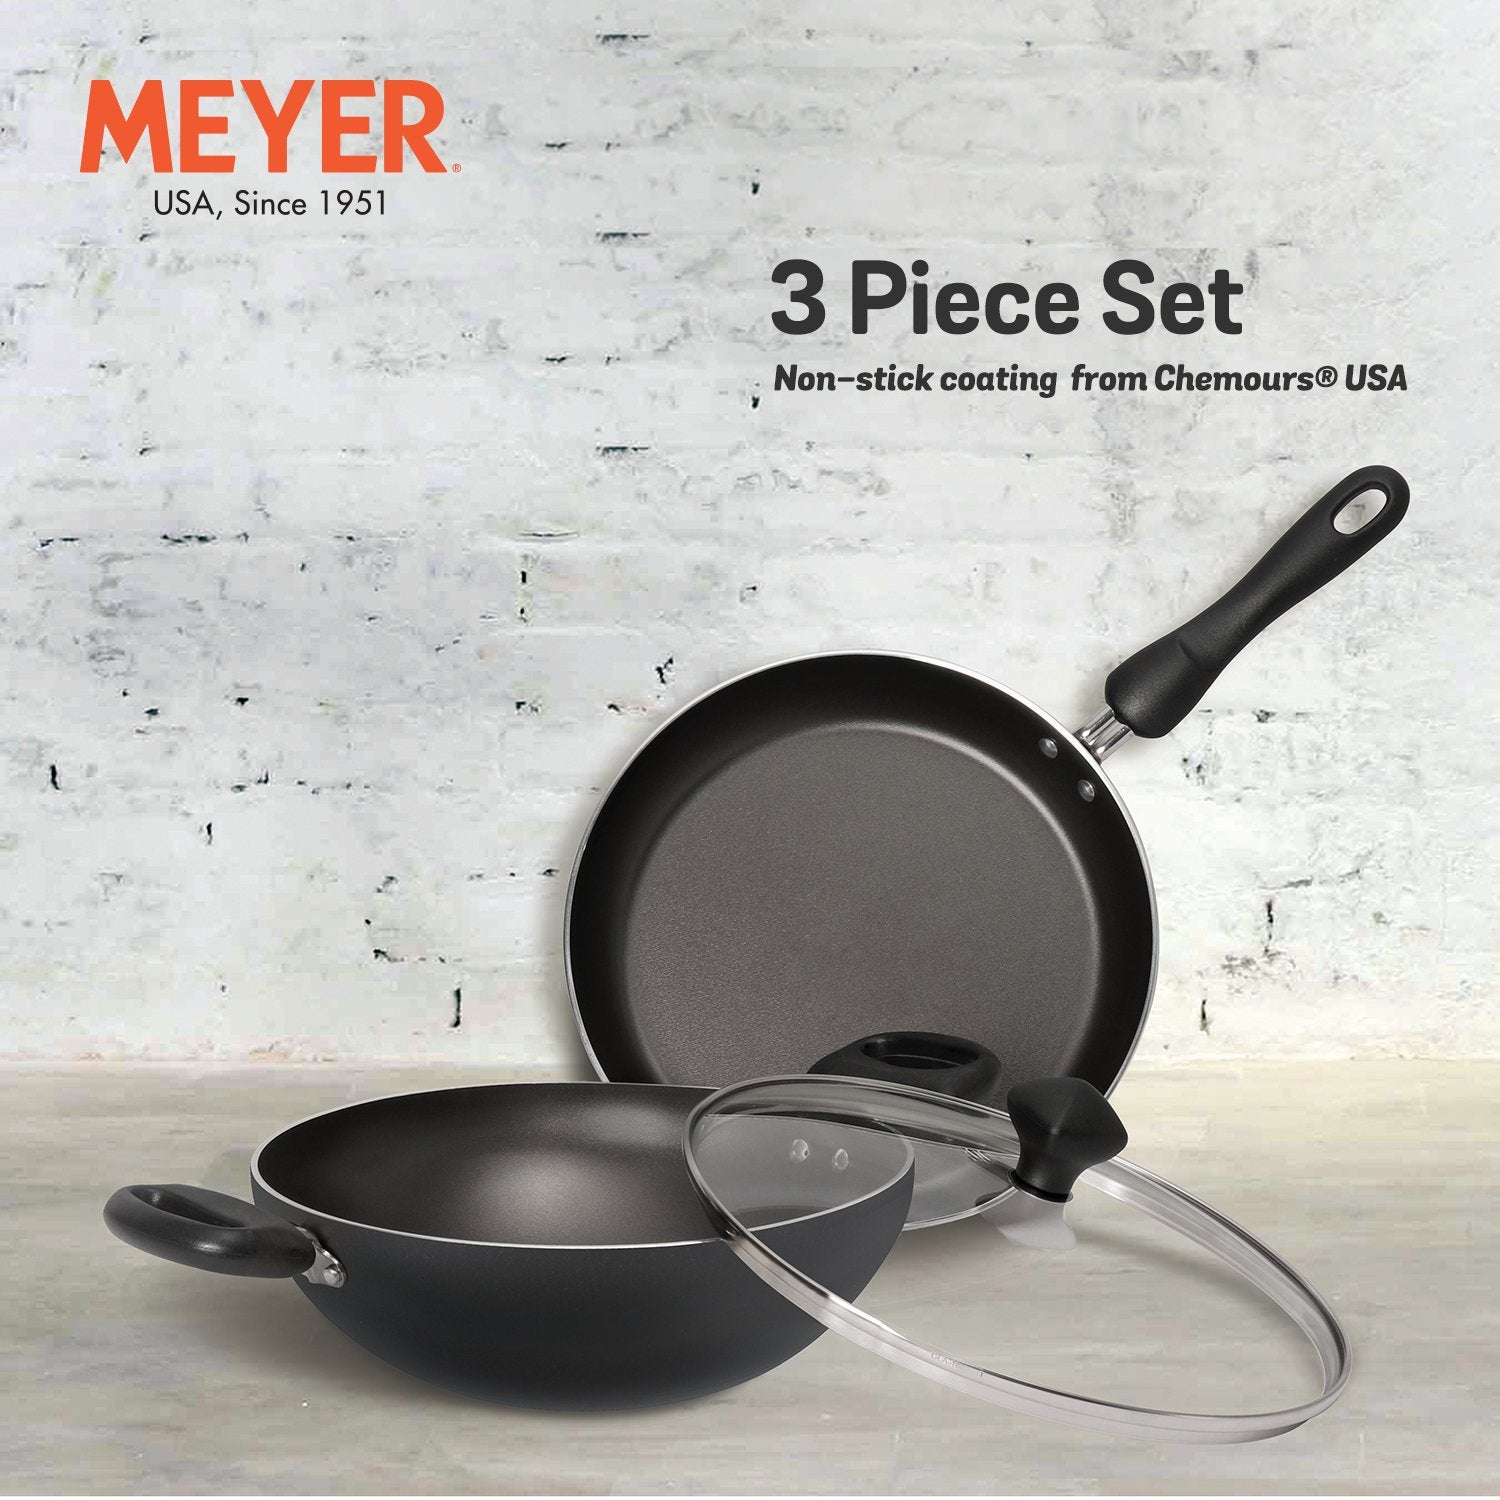 Meyer Non-Stick 3-Piece Cookware Set, Kadai + Frypan (Suitable For Gas & Electric Cooktops) - Pots and Pans